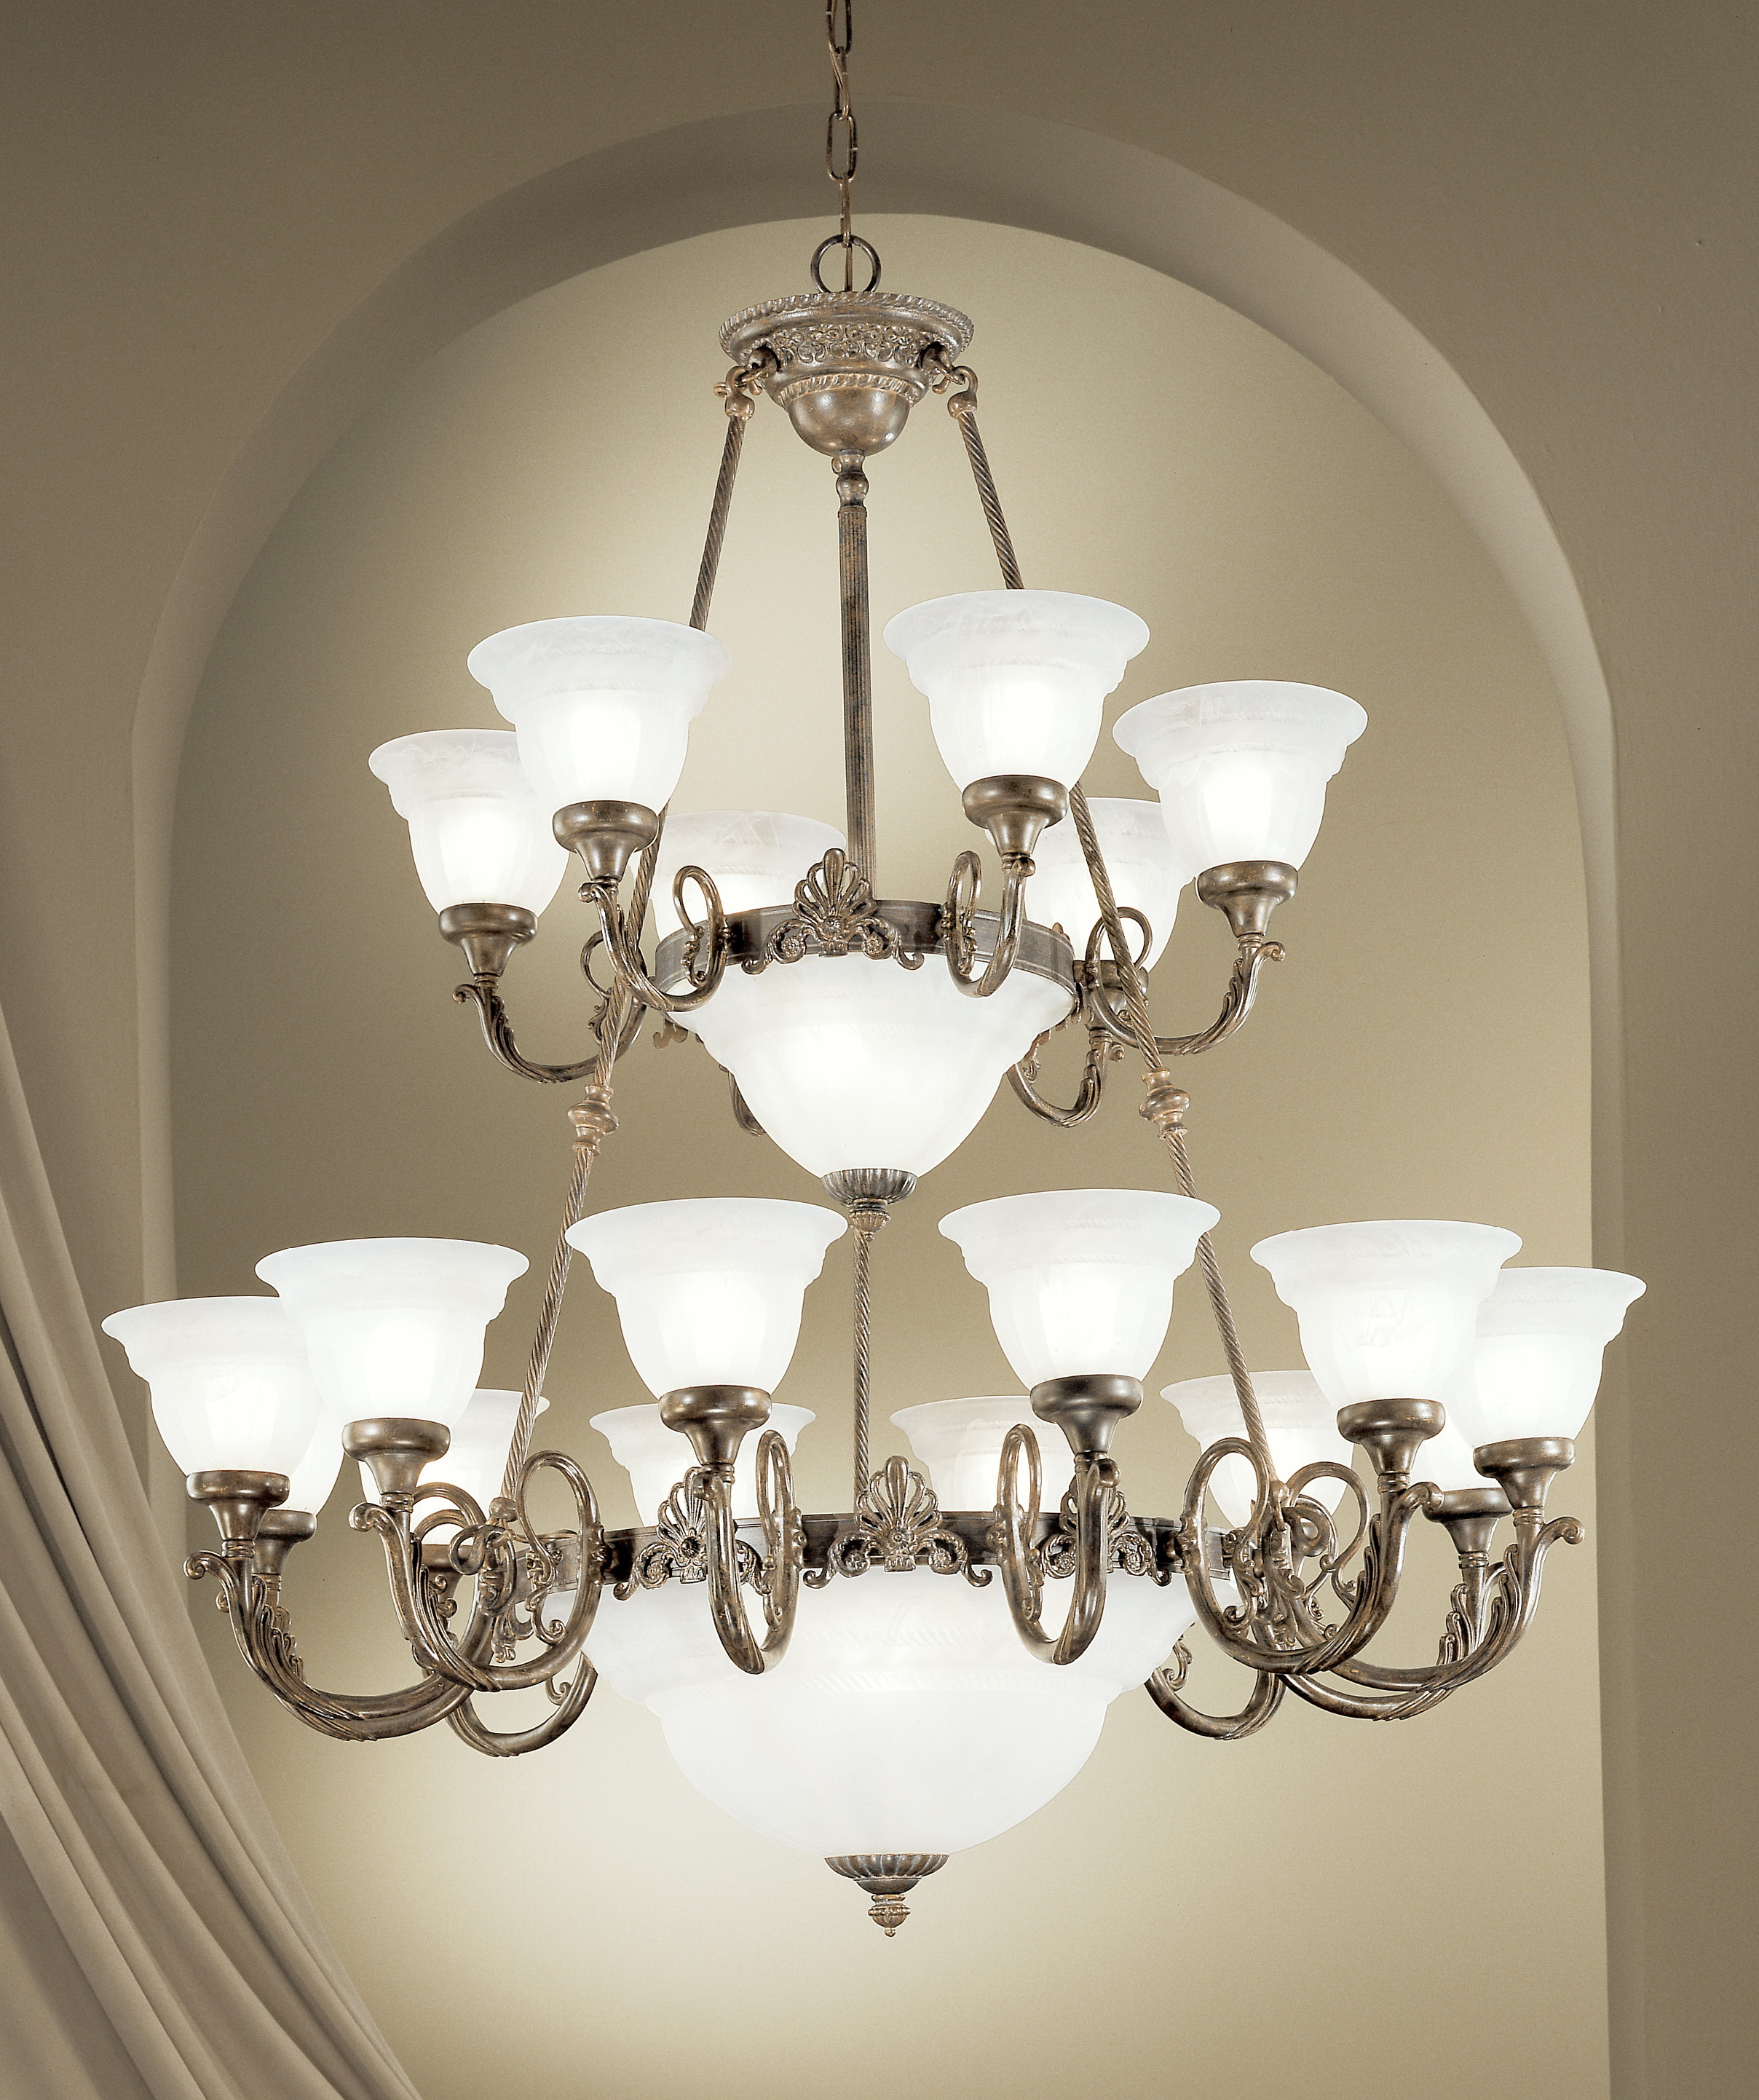 Lamps plus chandeliers sale home design ideas - Chandeliers on sale online ...